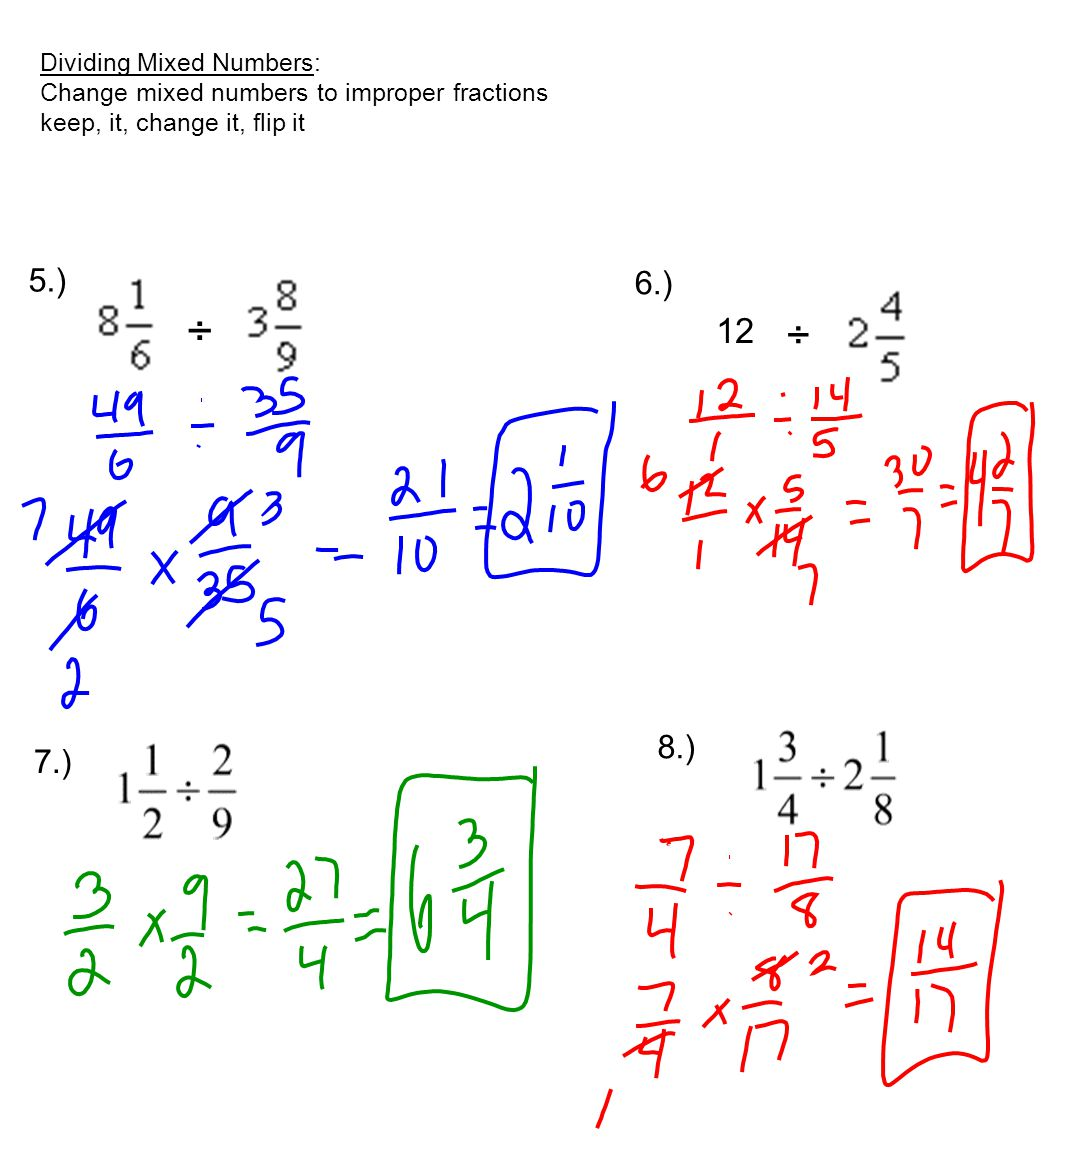 How To Divide Mixed Number Fractions Popflyboys